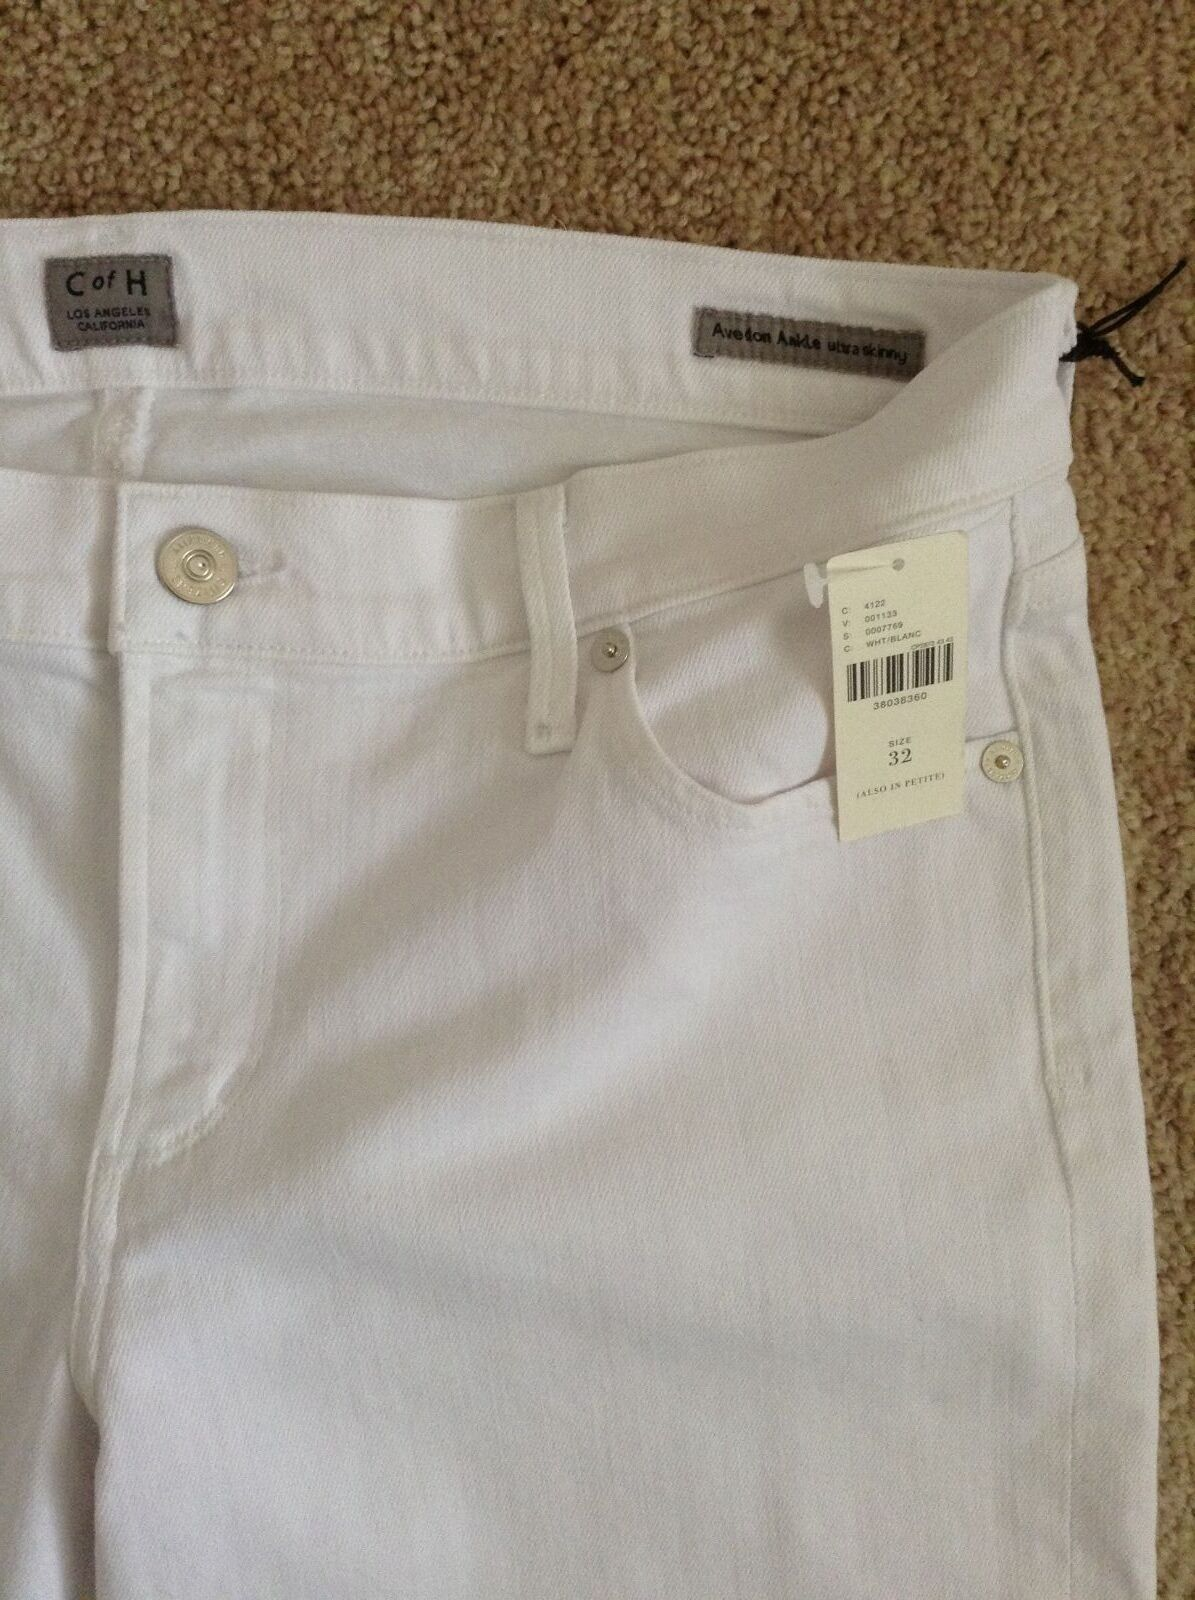 NWT Citizens of Humanity 'Avedon' Ankle Ultra Skinny JeansOptic White32 waist